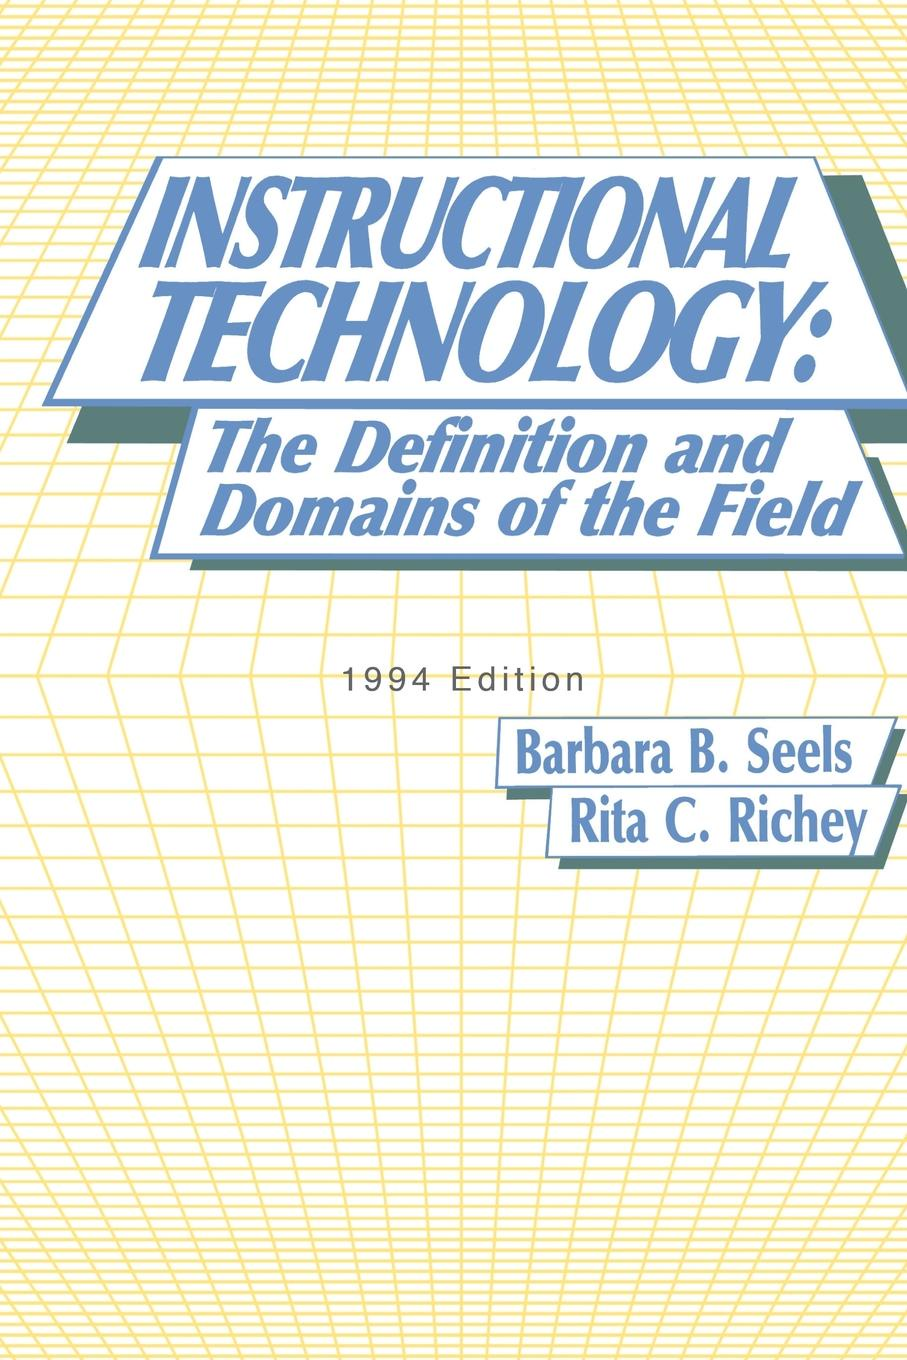 Barbara B. Seels, Rita C. Richey Instructional Technology. The Definition and Domains of the Field, 1994 Edition картина definition